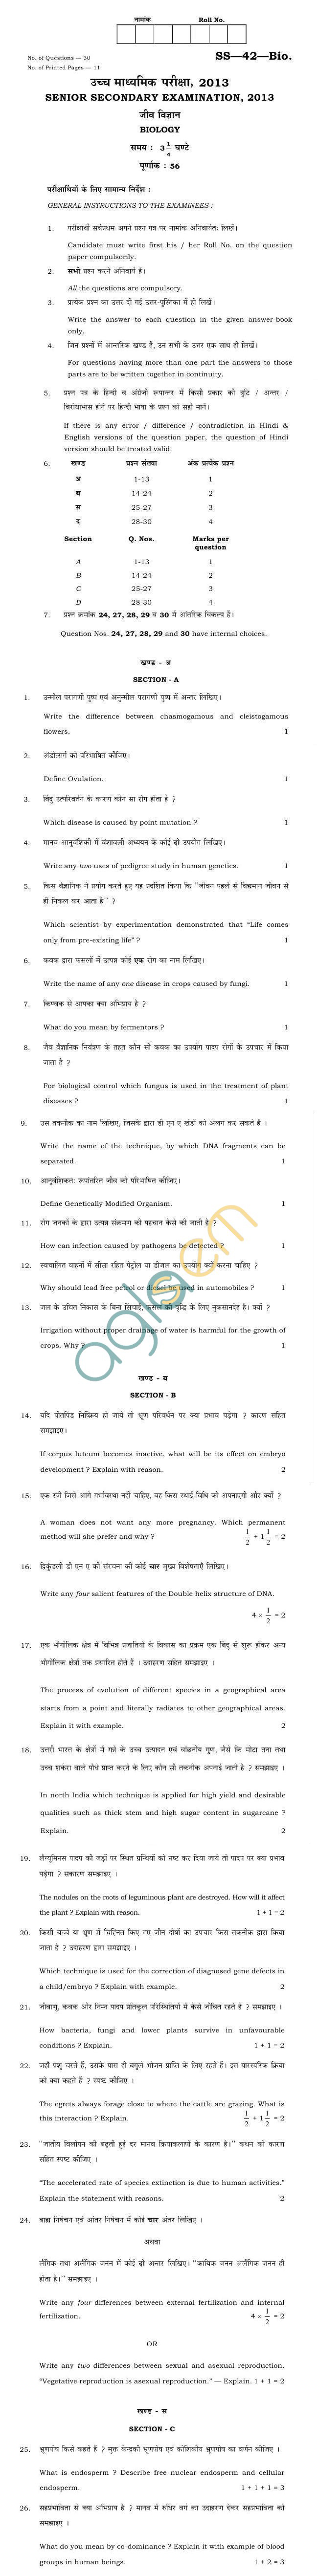 Rajasthan Board Sr. Secondary Biology Question Paper 2013